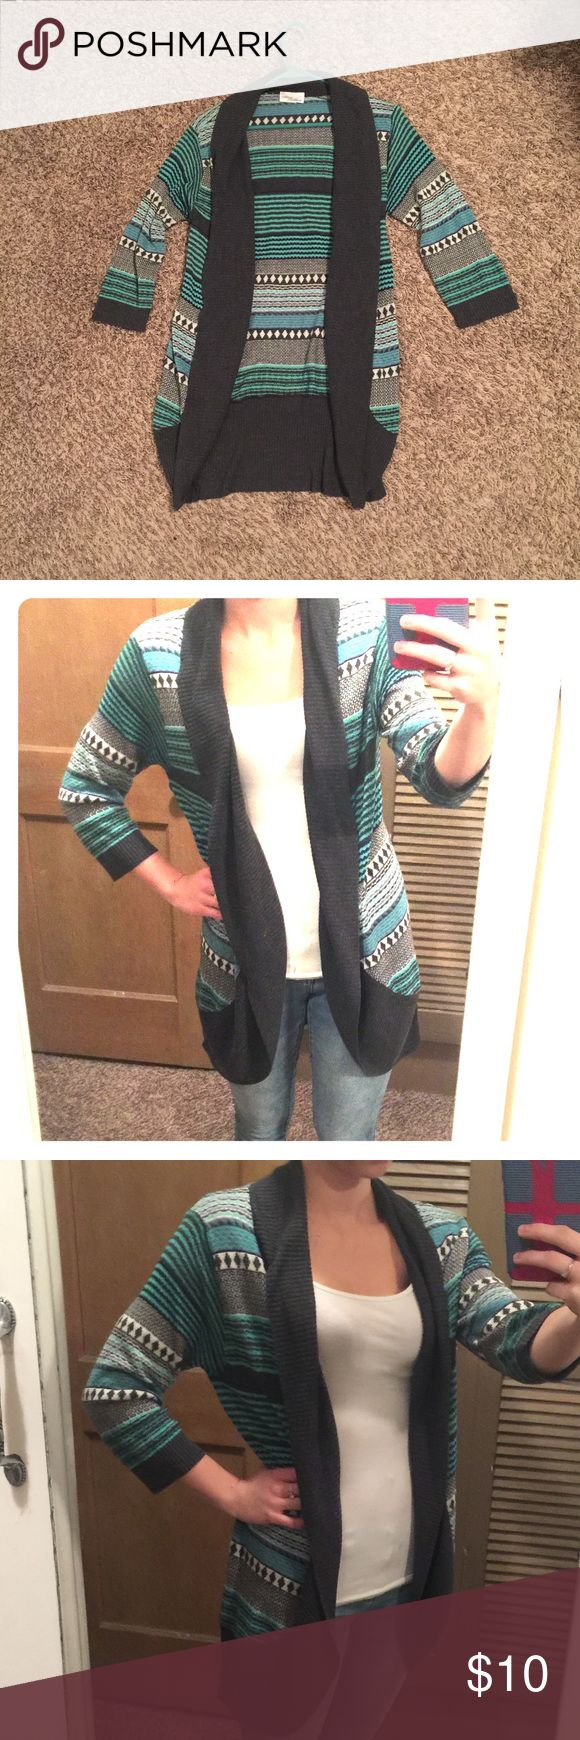 Half-sleeve tribal print cardigan! Tribal print cardigan that is half sleeve. Looks cute with leggings & boots. Very comfortable! There is a normal tag on it but I couldn't find the size, it fits like a medium-large (I'm size small and wearing it in the second two pictures!) H&M Sweaters Cardigans